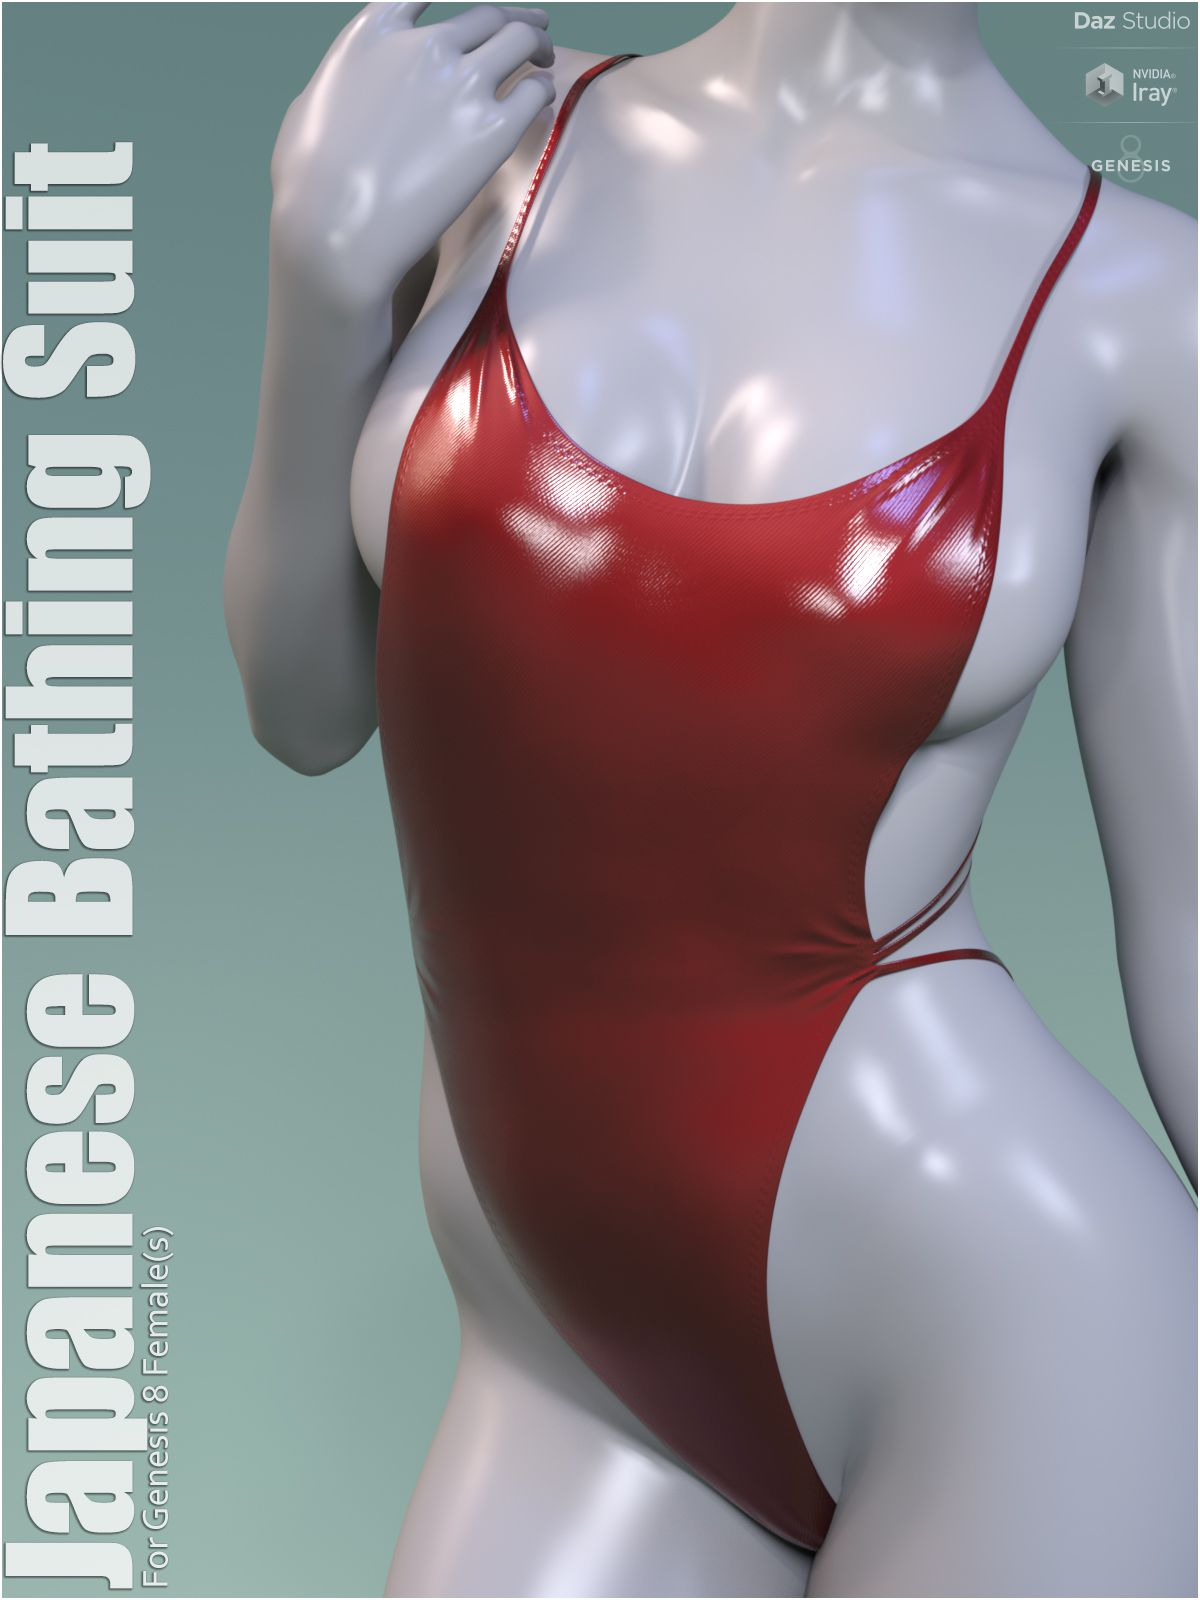 Japanese Bathing Suit_DAZ3D下载站